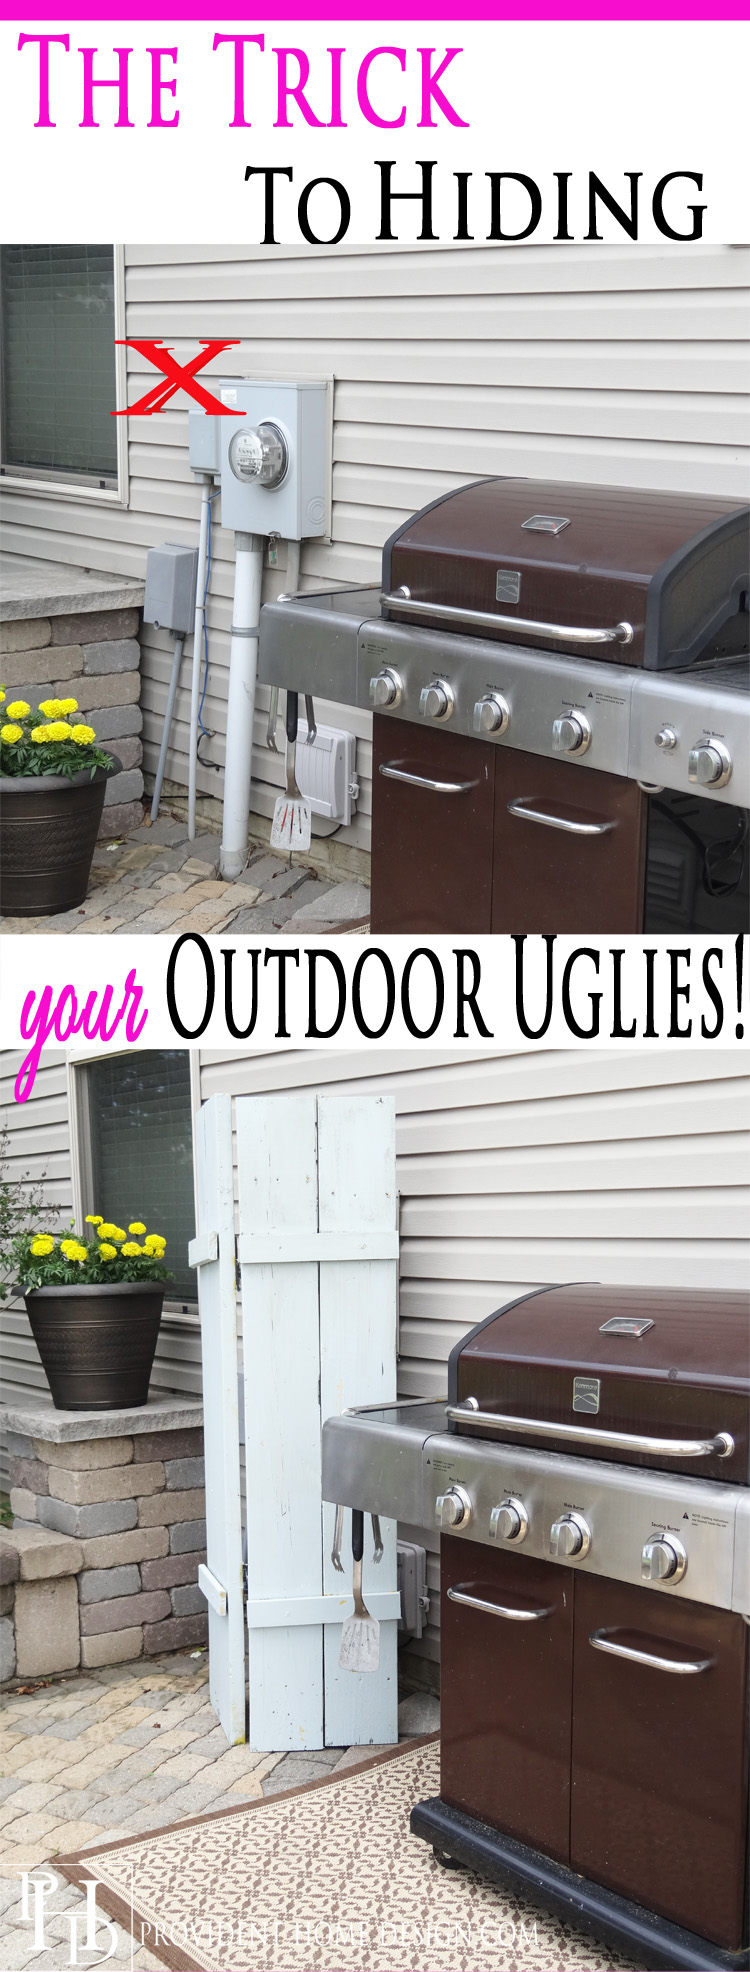 The Trick to Hiding Outdoor Uglies!